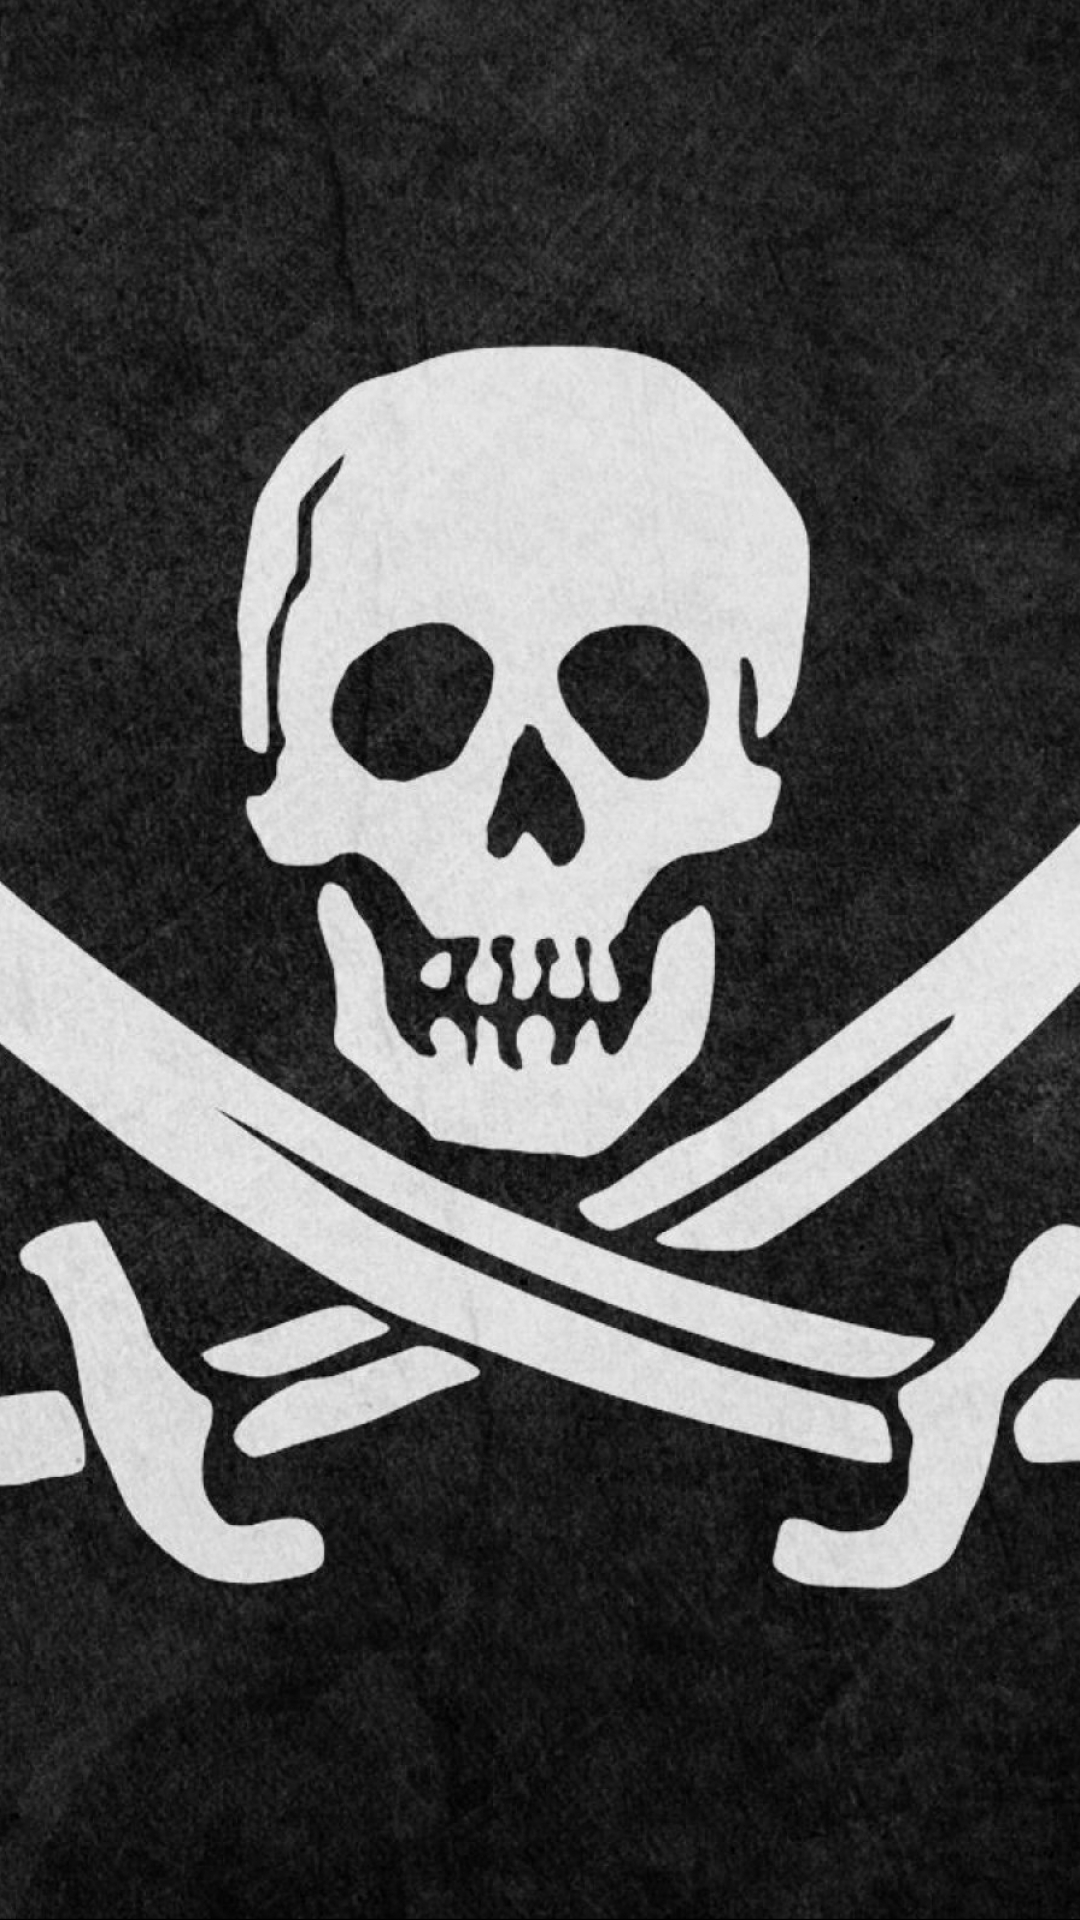 jolly roger iphone wallpaper wwwpixsharkcom images